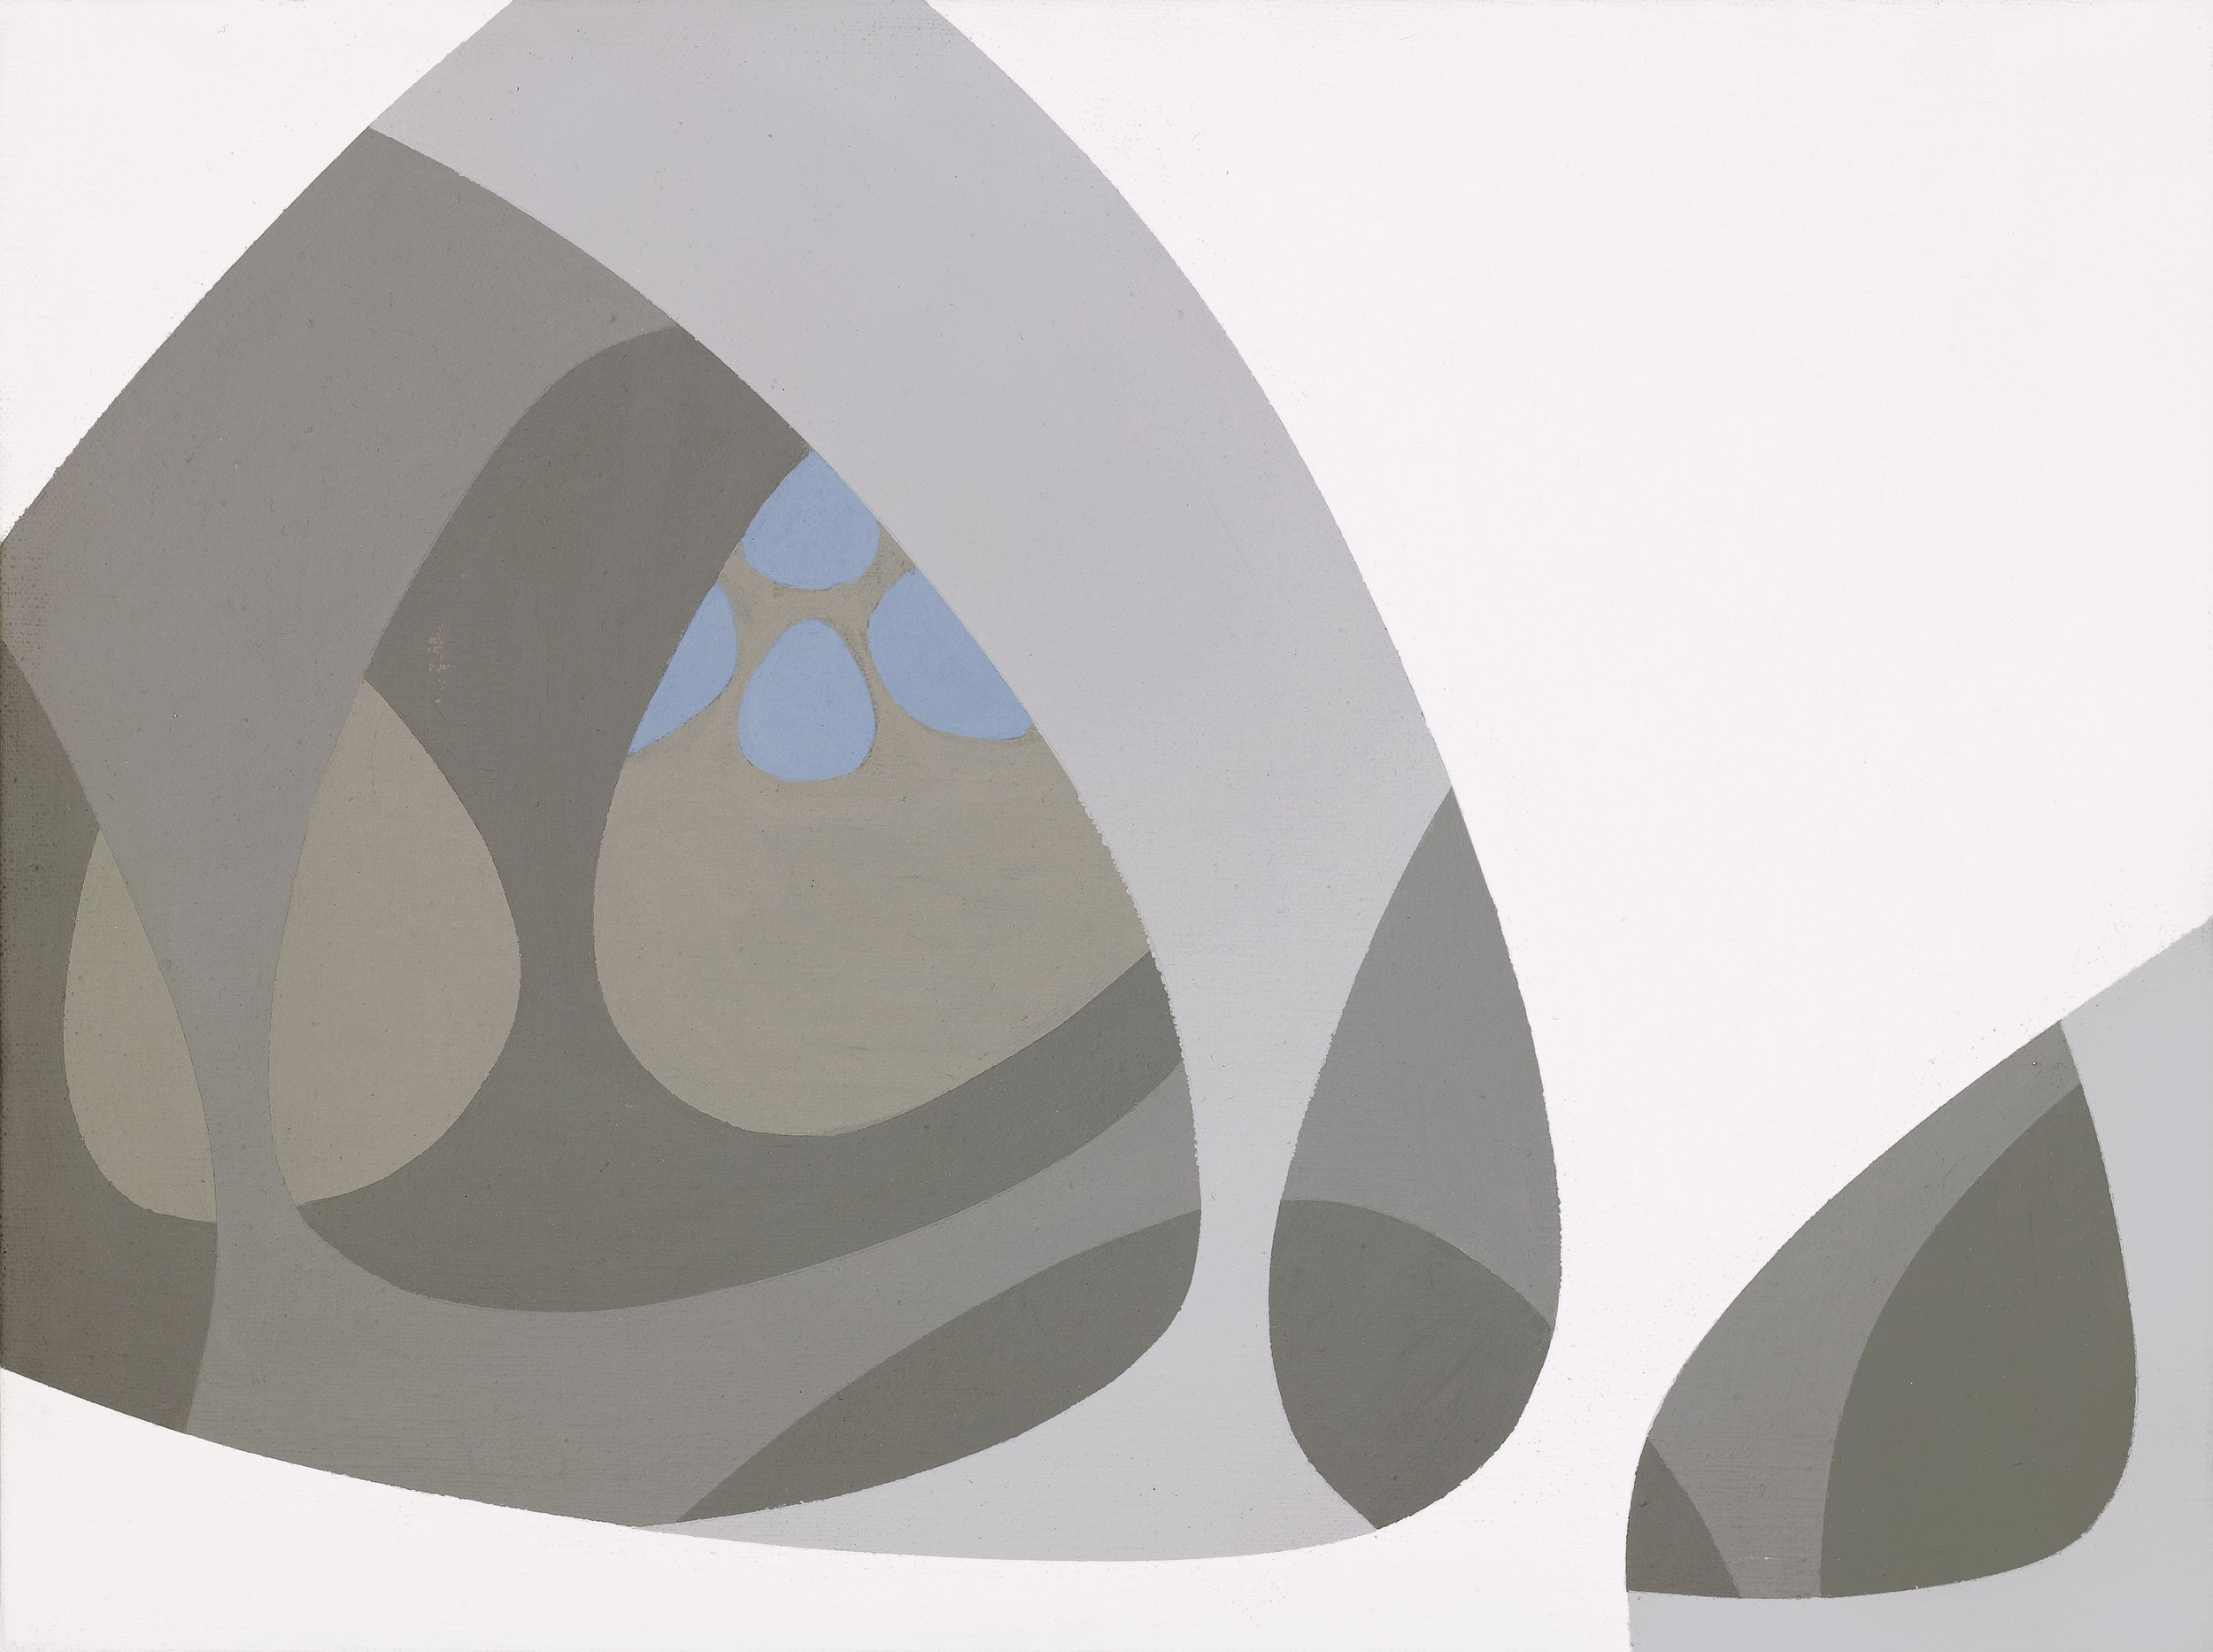 Untitled (Arcane Forms), 1970 acrylic on canvas 12 x 16 inches; 30.5 x 40.6 centimeters